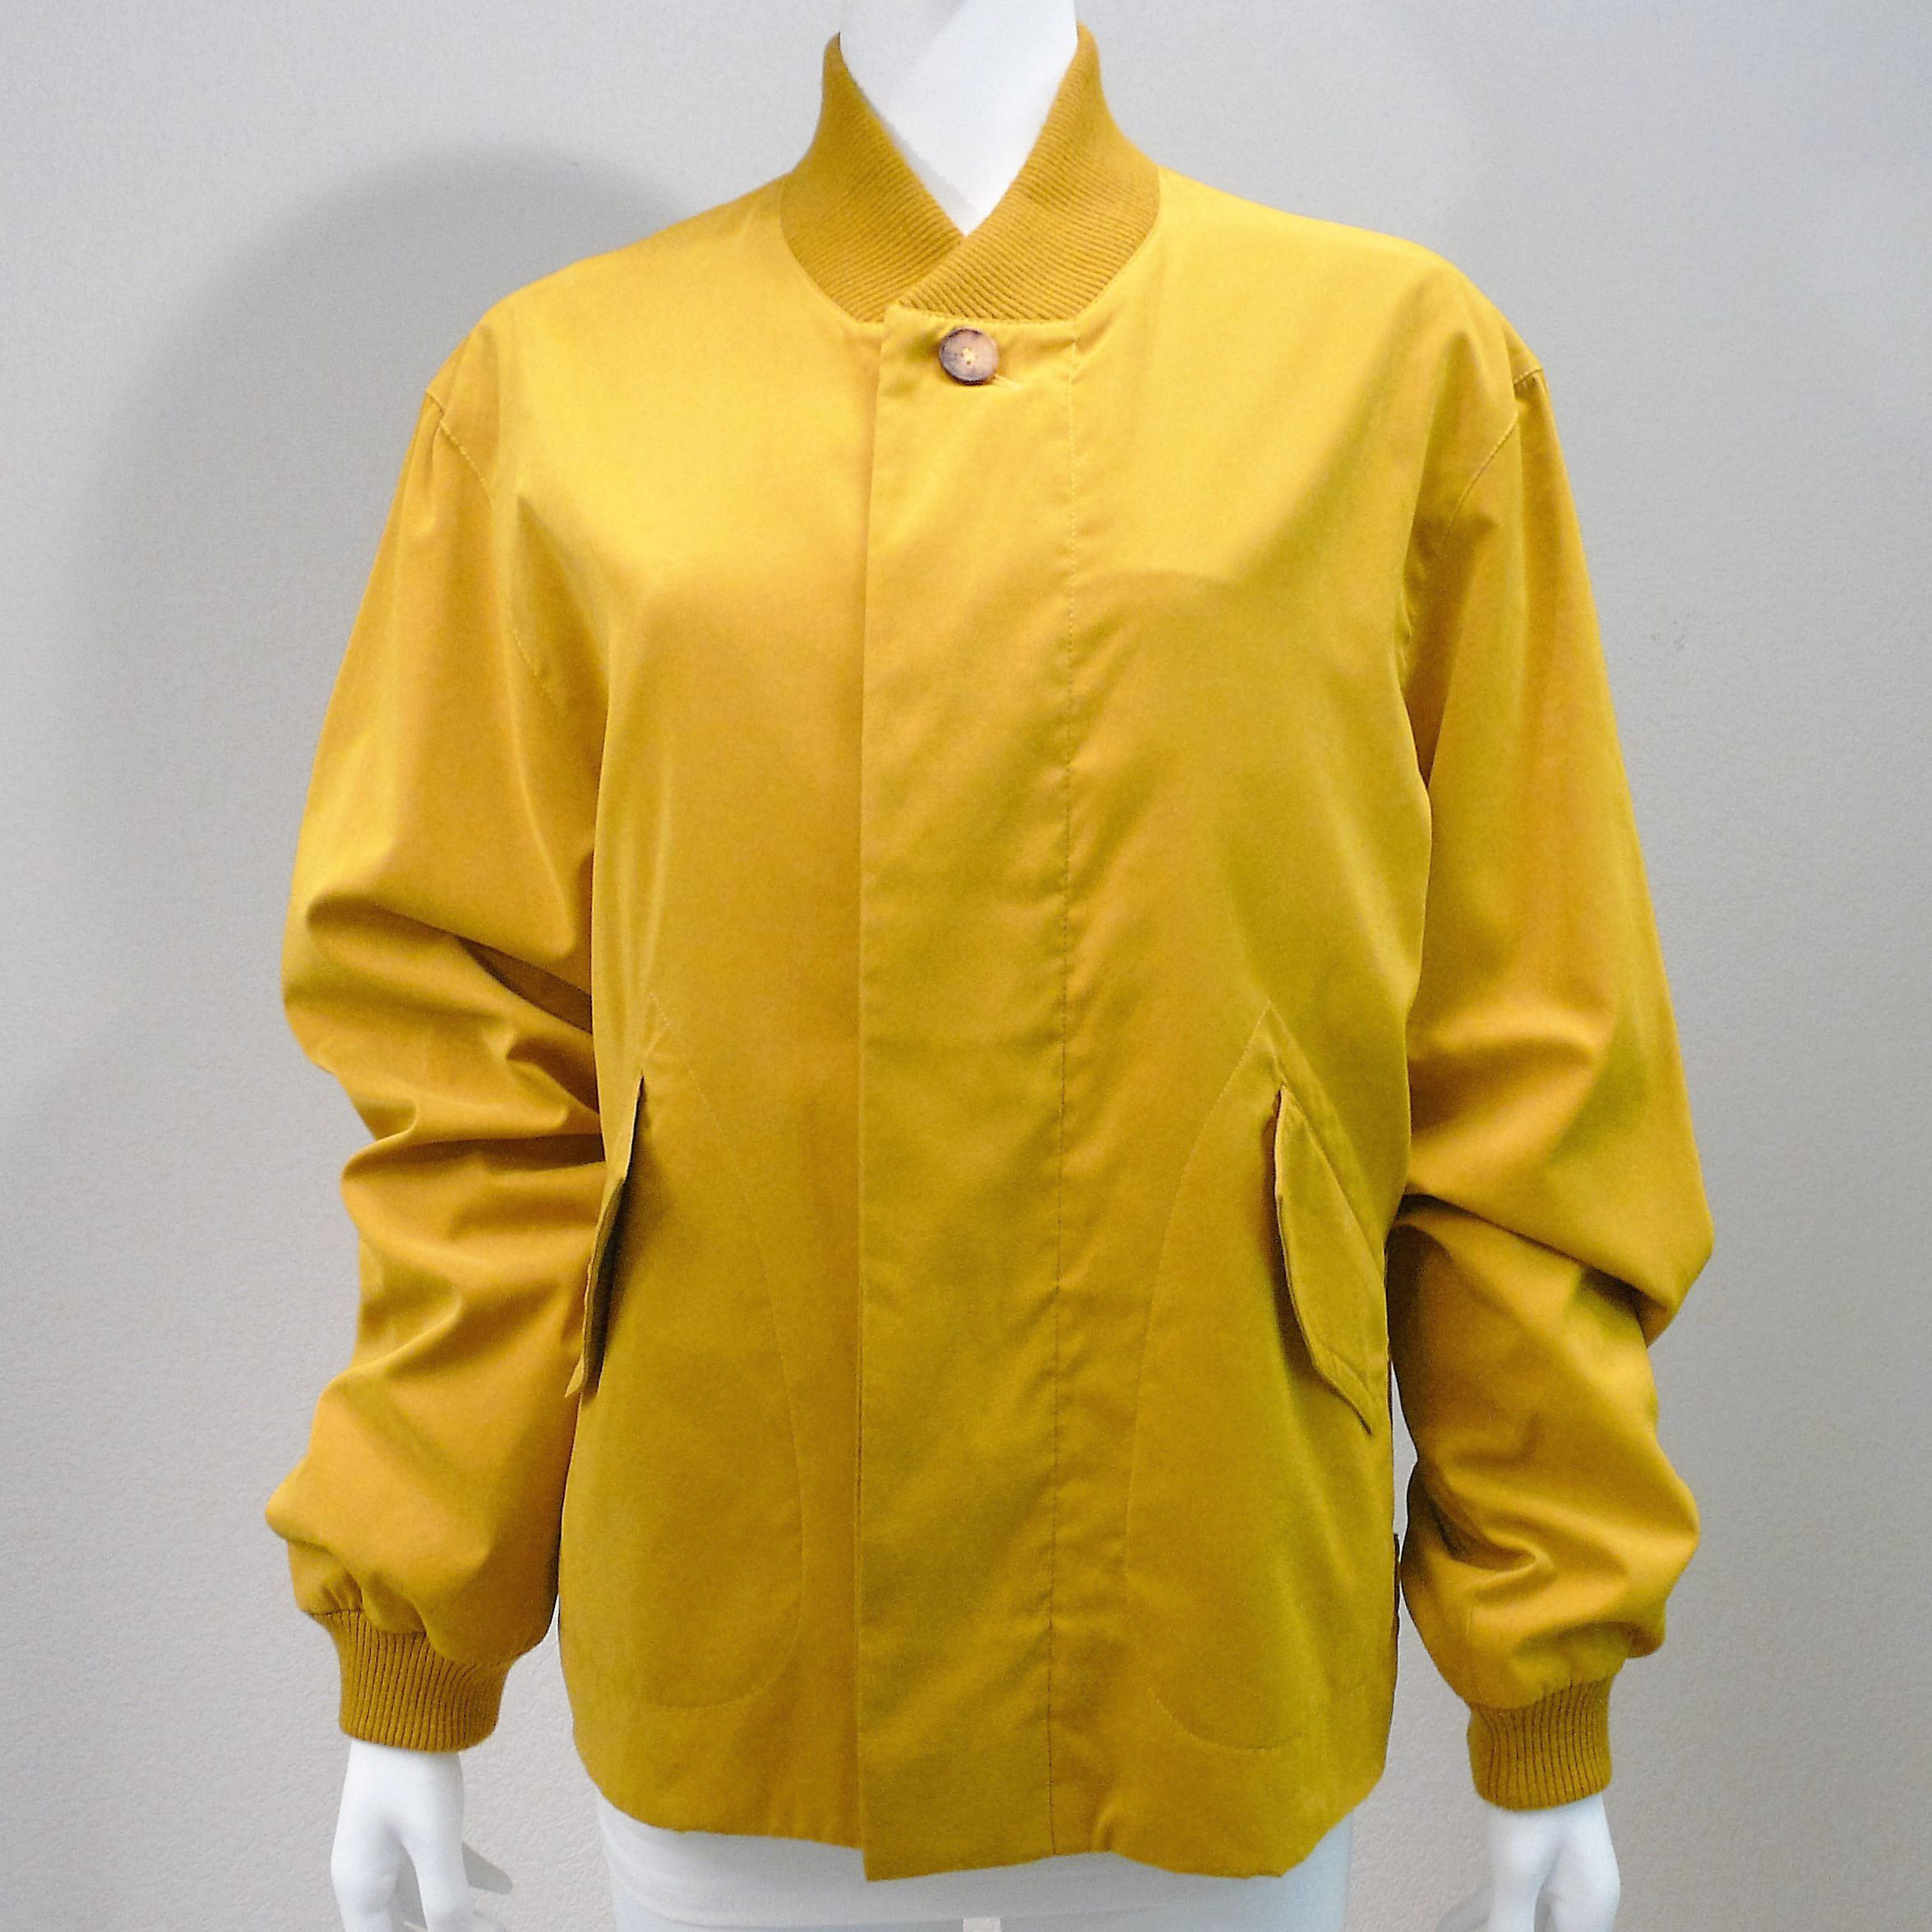 VTG Mens Windbreaker HERMES Gold Color Sz 48